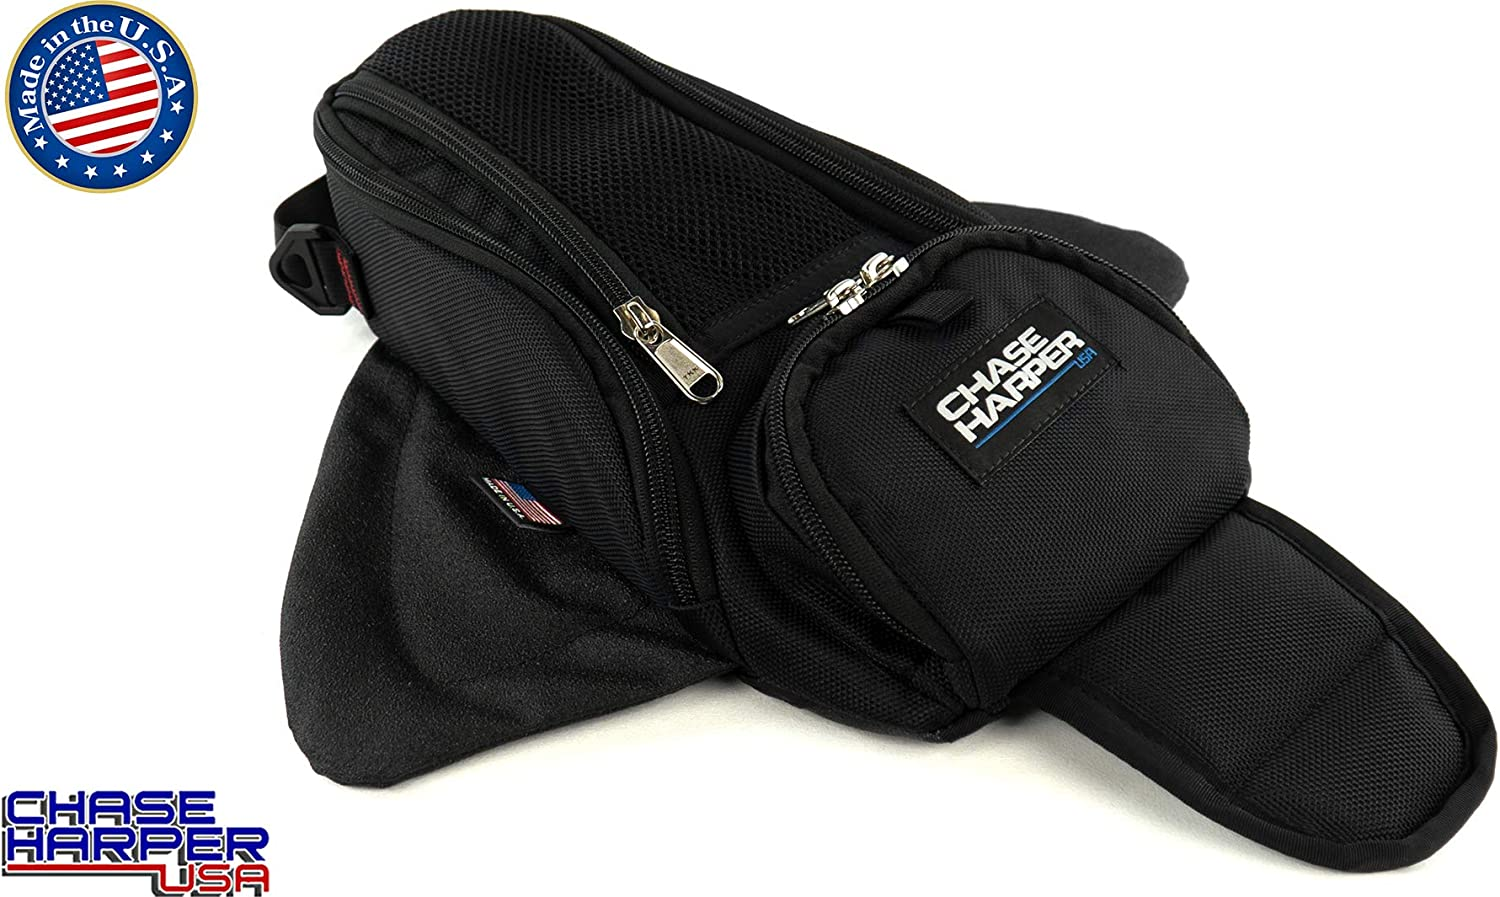 Chase Harper USA 1602M Black Manta X2 Magnetic Tank Bag - Water-Resistant, Tear-Resistant, Industrial Grade Ballistic Nylon with Anti-Scratch Rubberized Polymer Bottom, Super Strong Neodymium Magnets: Automotive